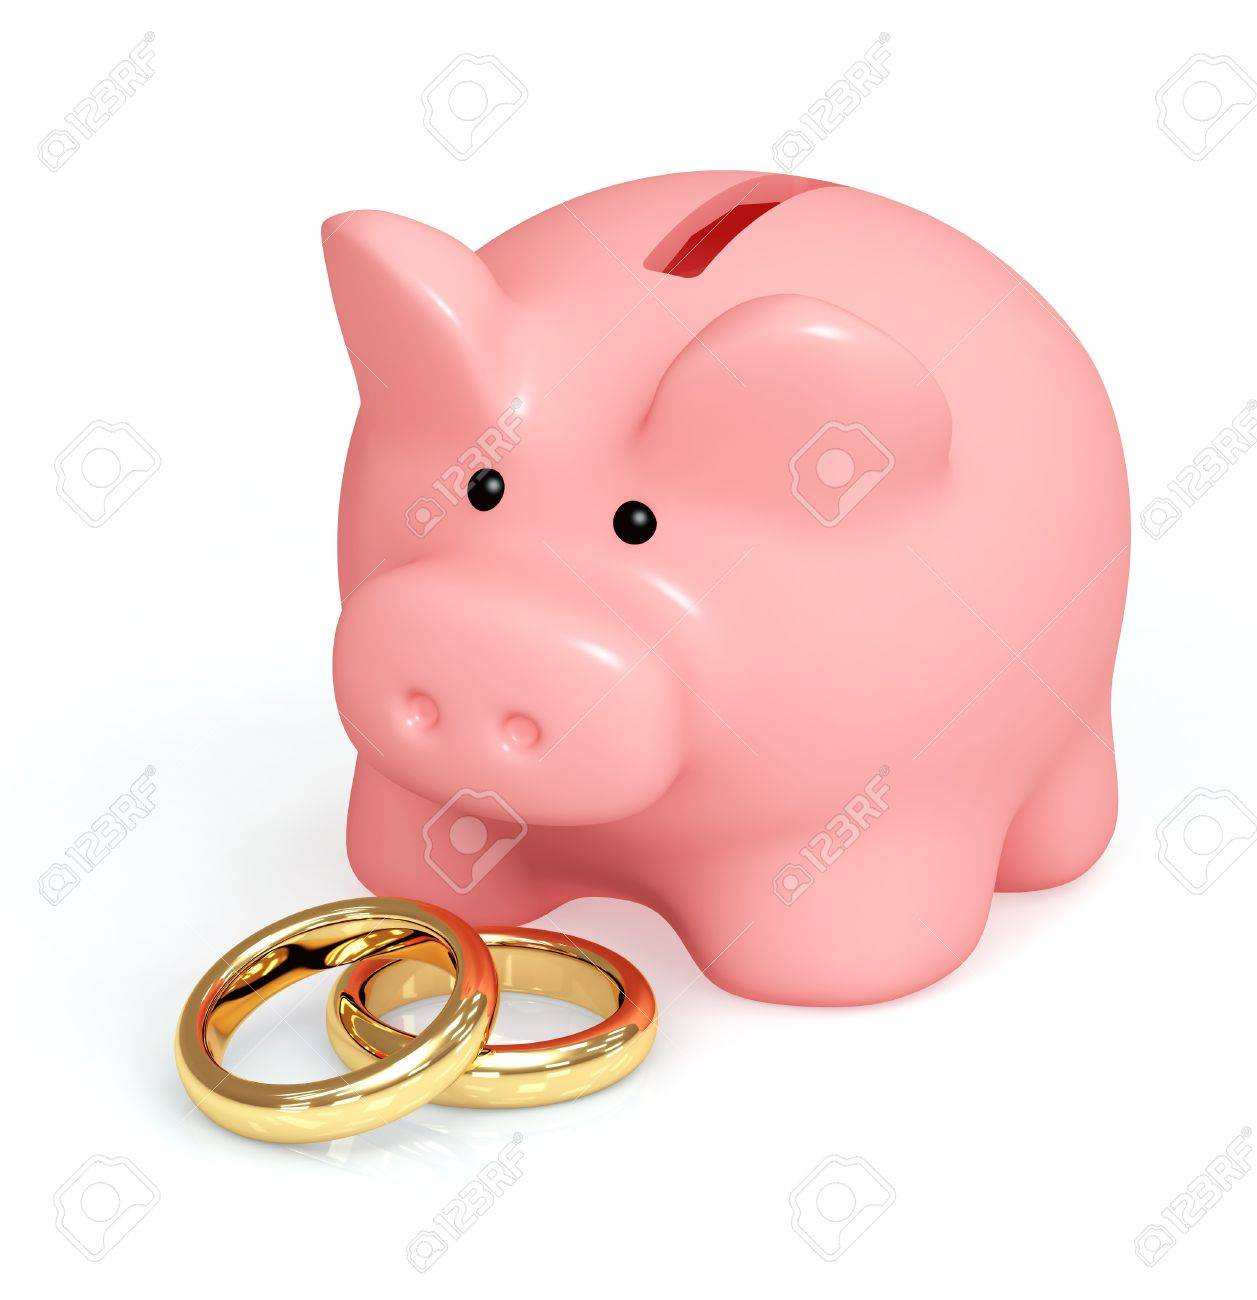 Money For Wedding. Piggy Bank And Wedding Rings Stock Photo, Picture ...